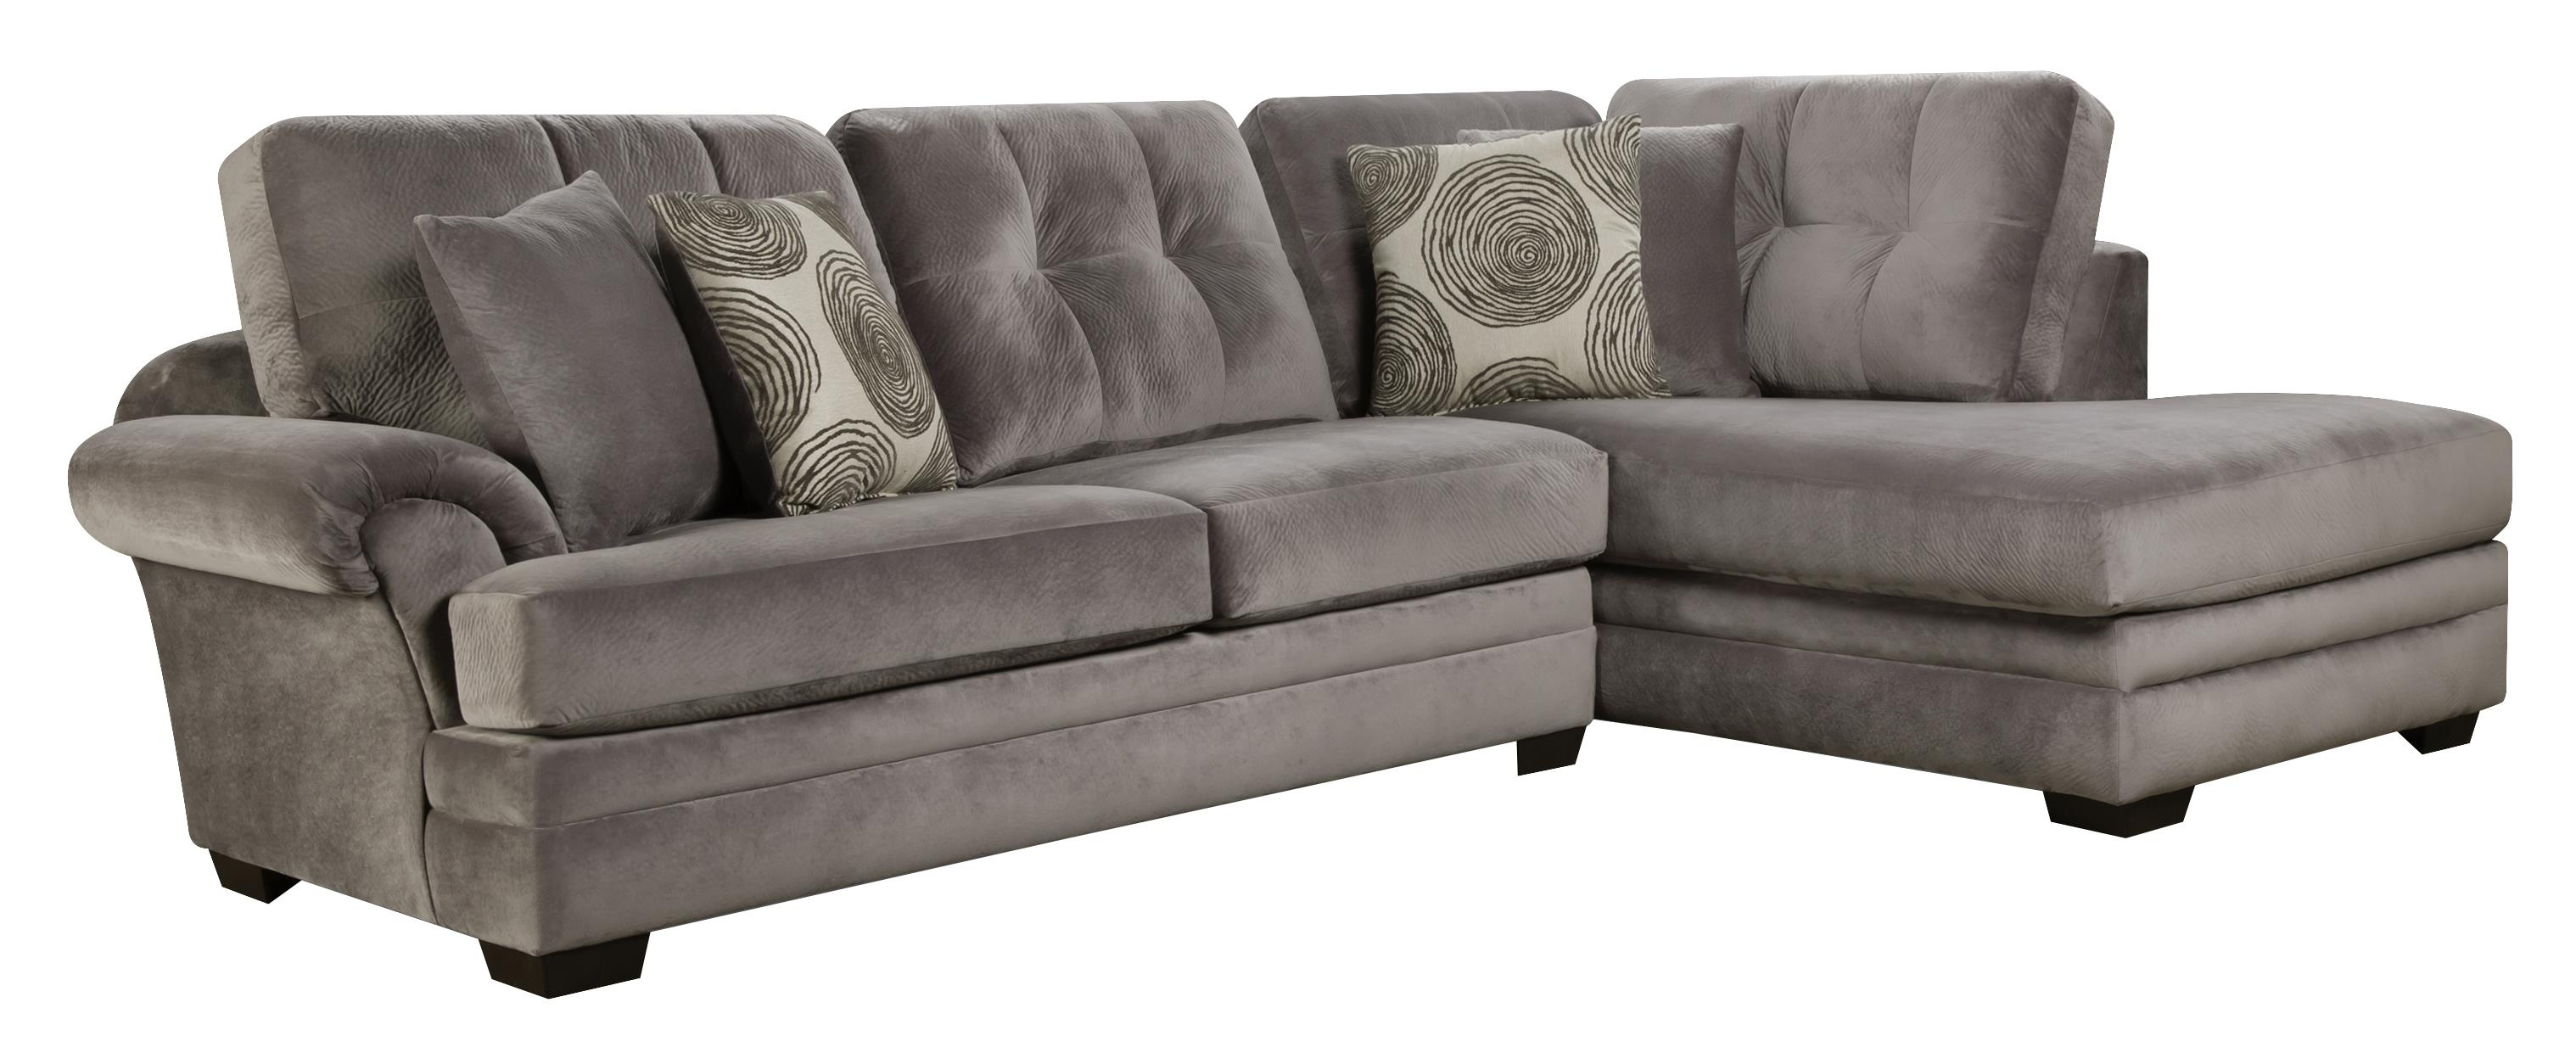 Sectional Sofa With Chaise (on Right Side)corinthian | Wolf And In Gardiners Sectional Sofas (View 2 of 10)